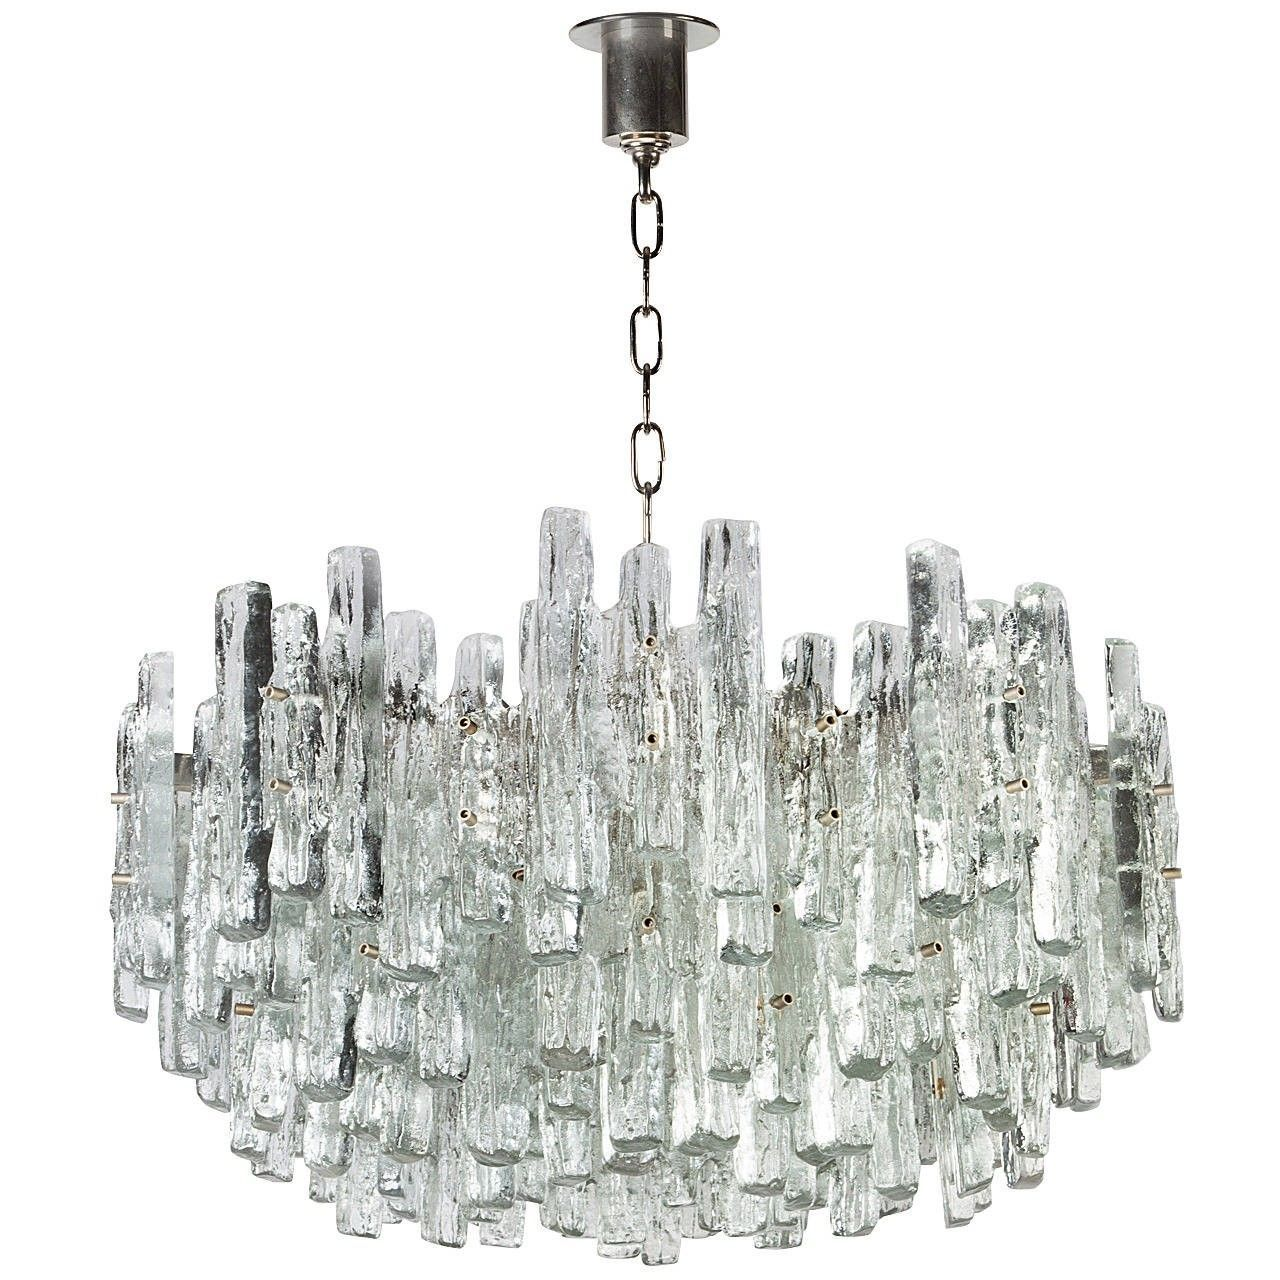 Vk4025 kalmar venetian ice style clear textured glass icicle vk4025 kalmar venetian ice style clear textured glass icicle pendant chandelier 24 aloadofball Gallery